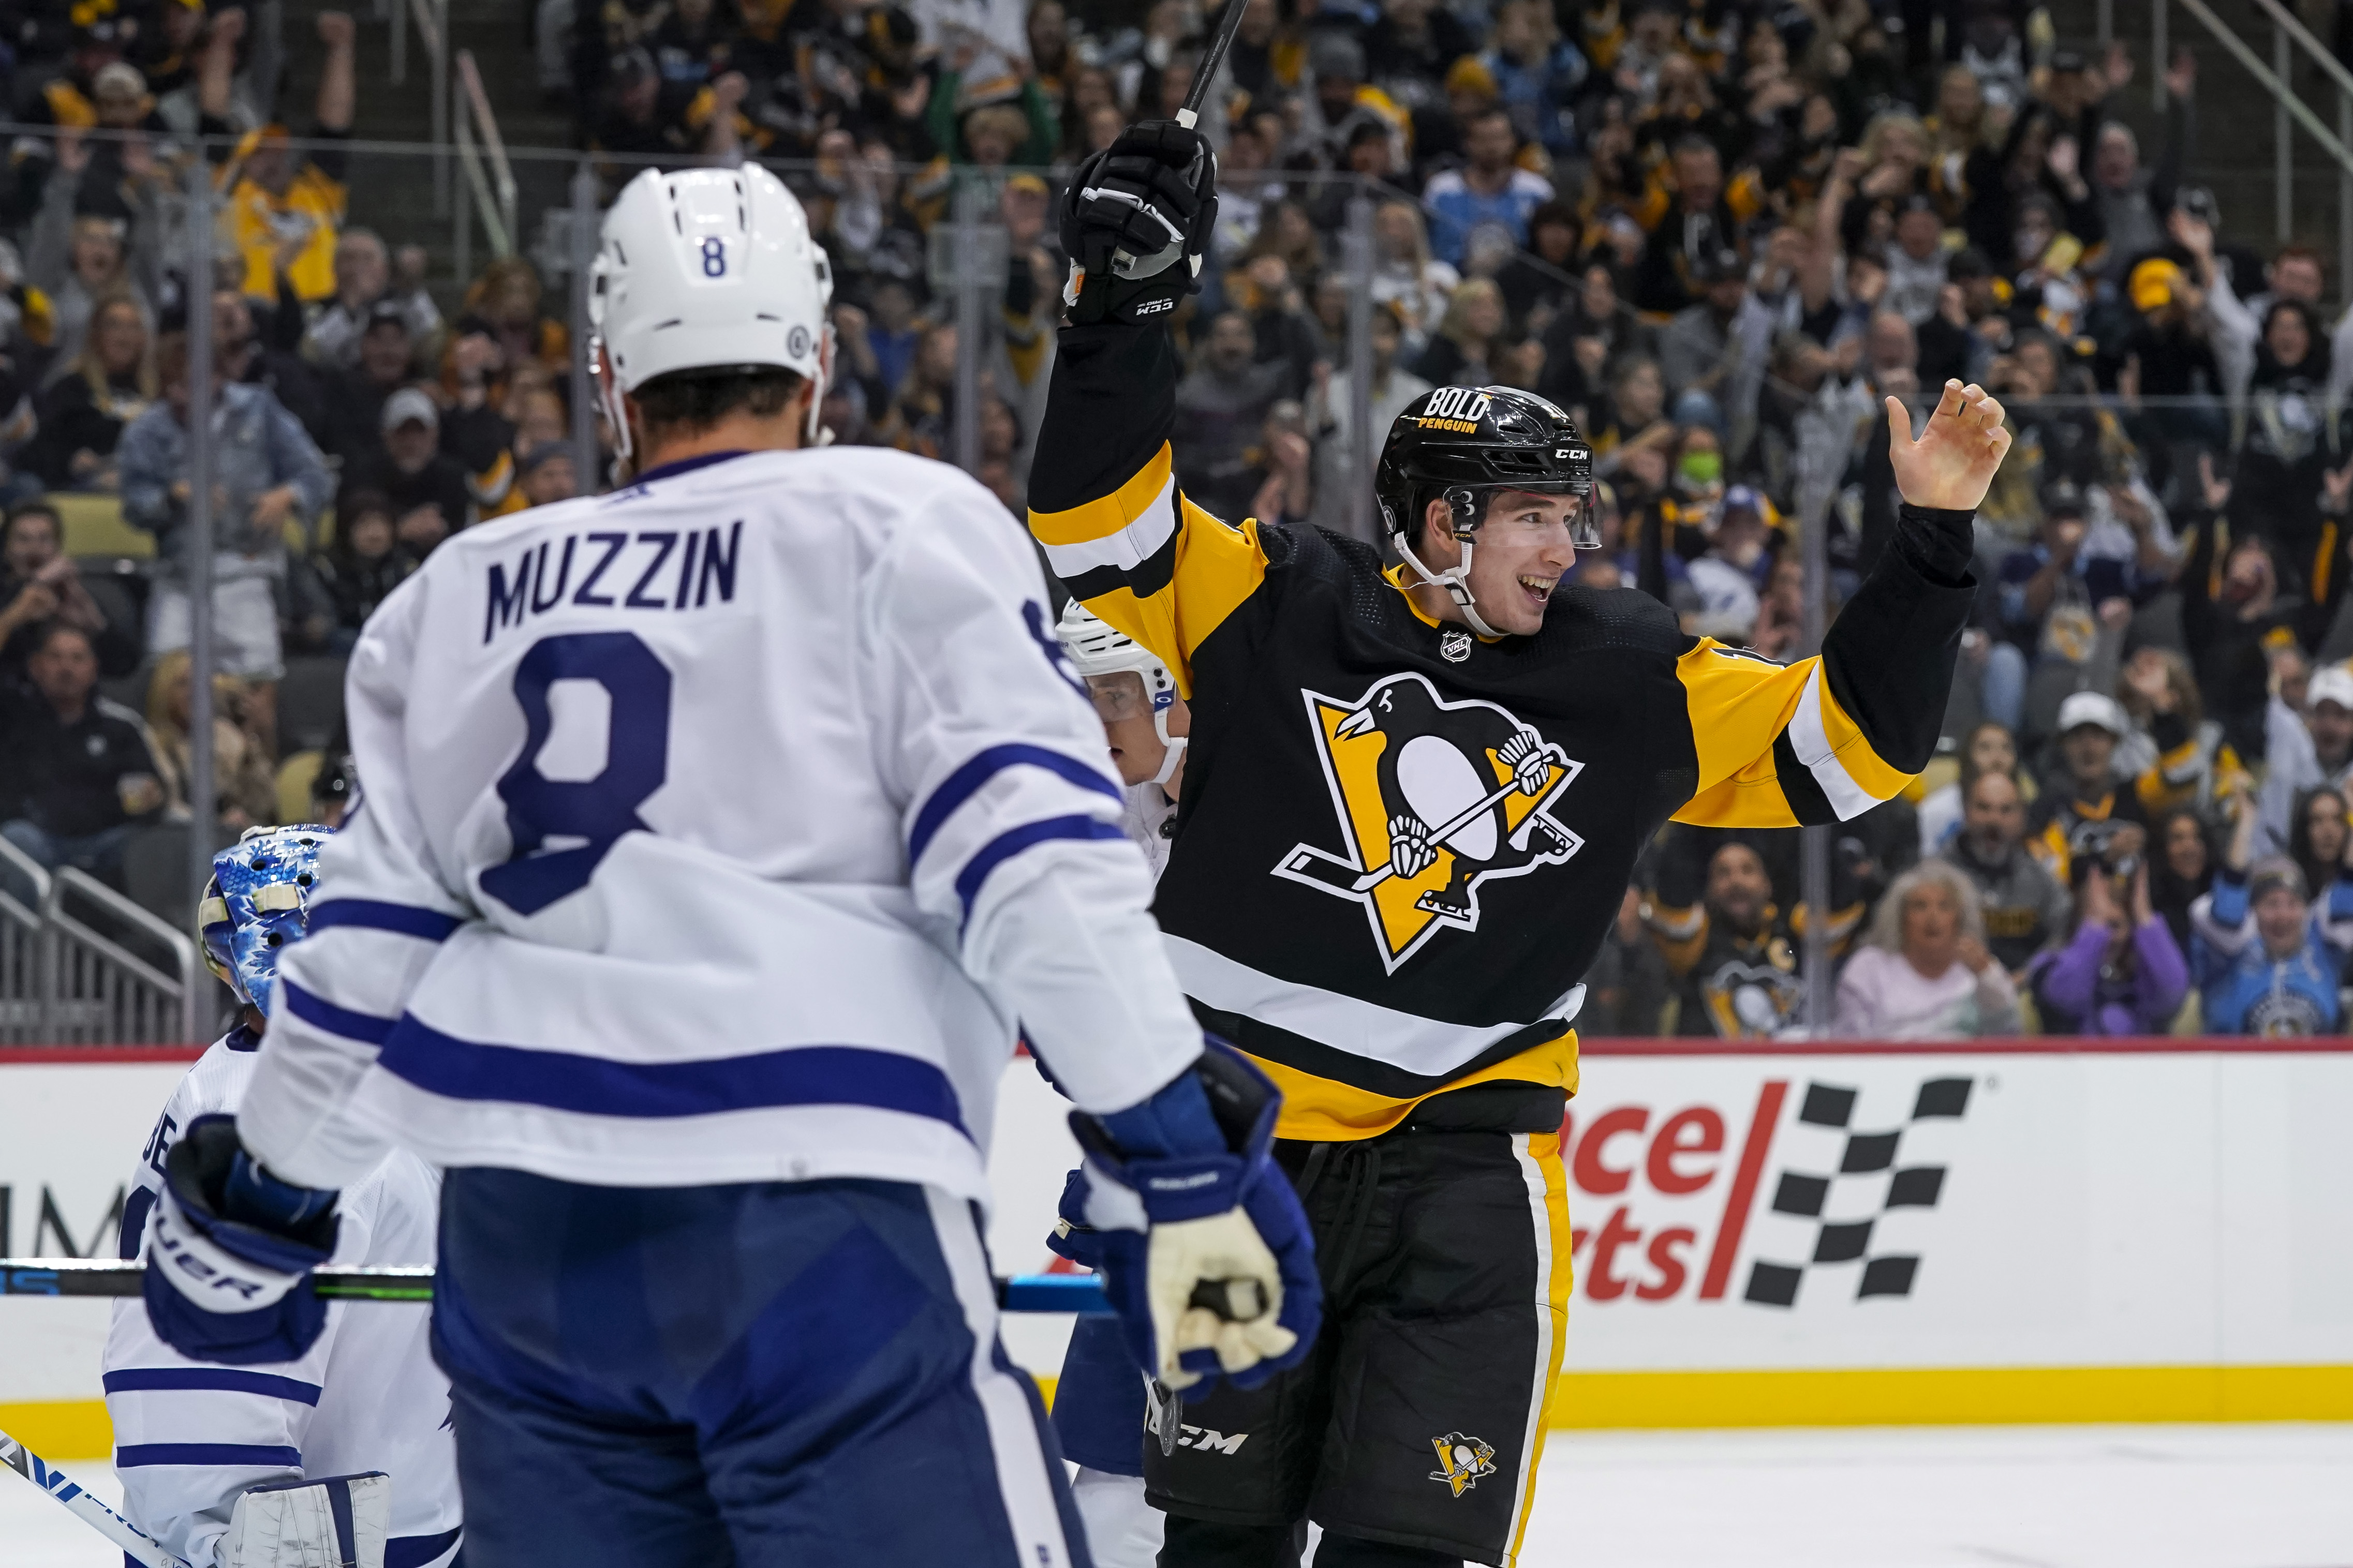 NHL: OCT 23 Maple Leafs at Penguins